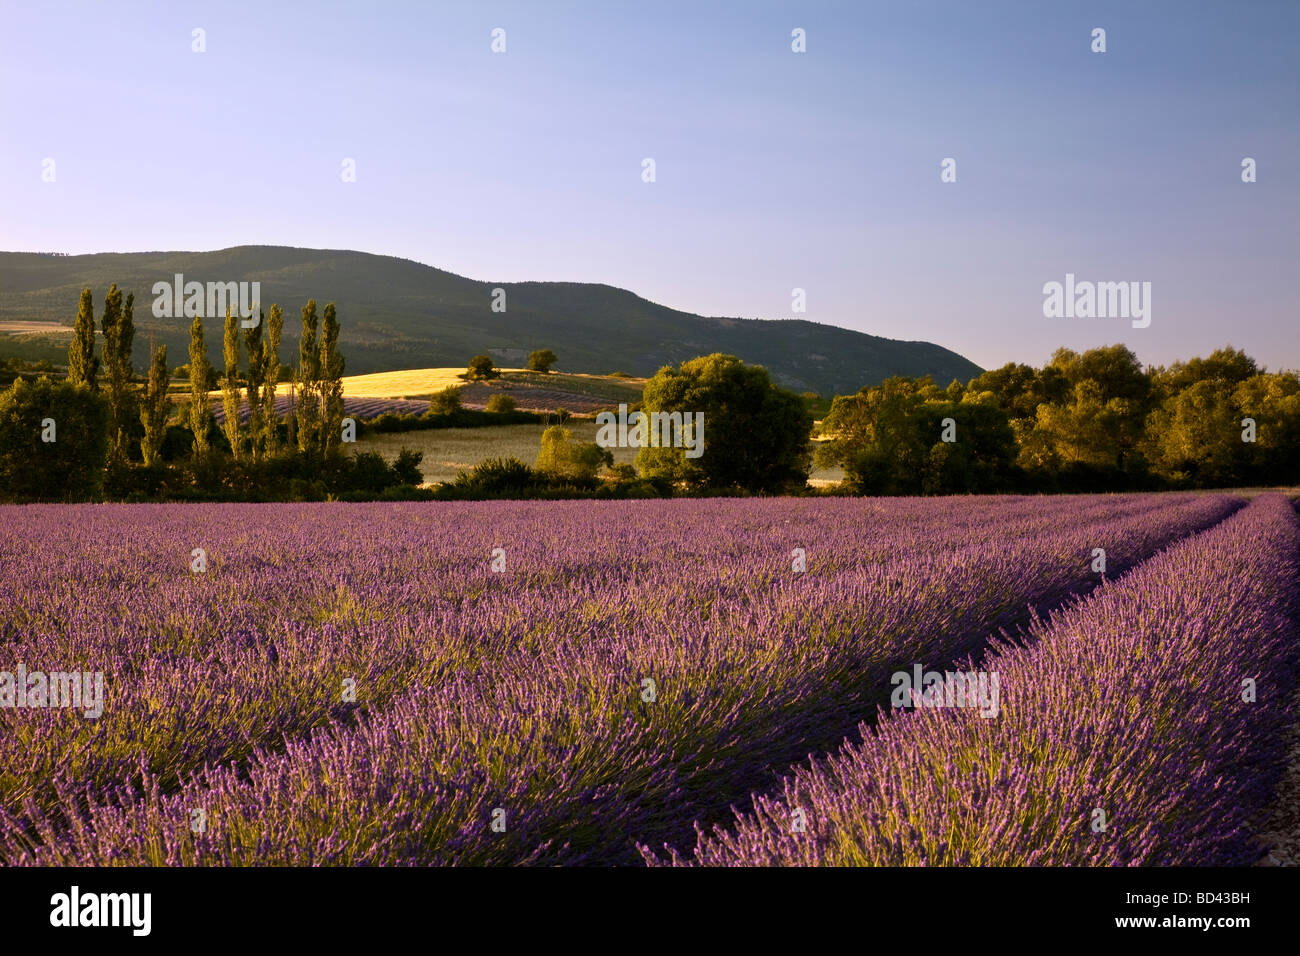 Lavender field with hills and farm land beyond near Sault, Provence France - Stock Image